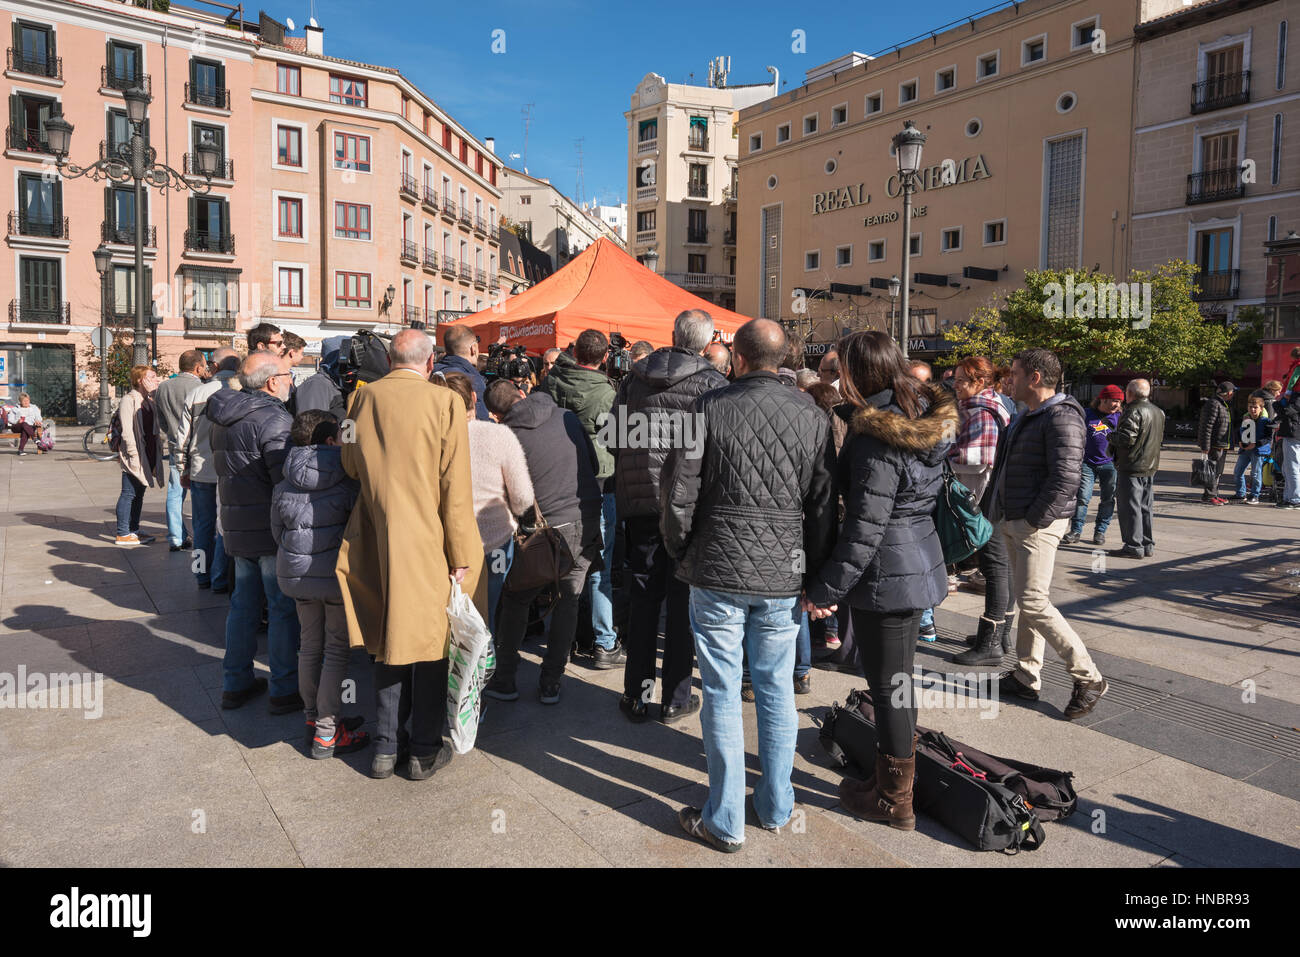 Madrid, Spain - November 13, 2016: Ciudadanos, spanish politic group douring a meeting on November 13, 2016 in Madrid, - Stock Image